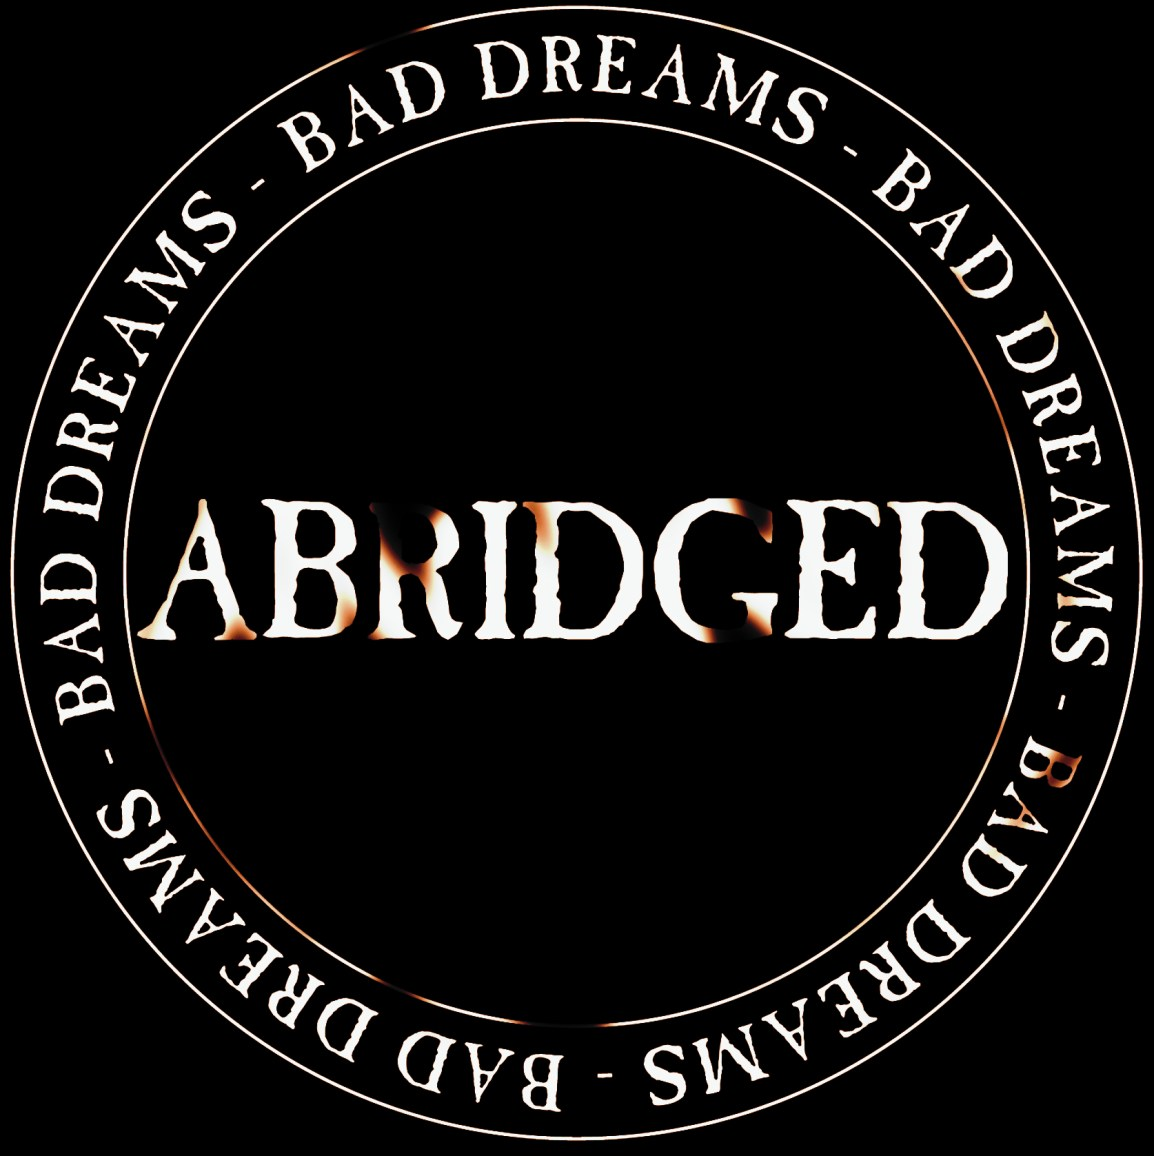 Index of the Abridged – Artists of the Zone